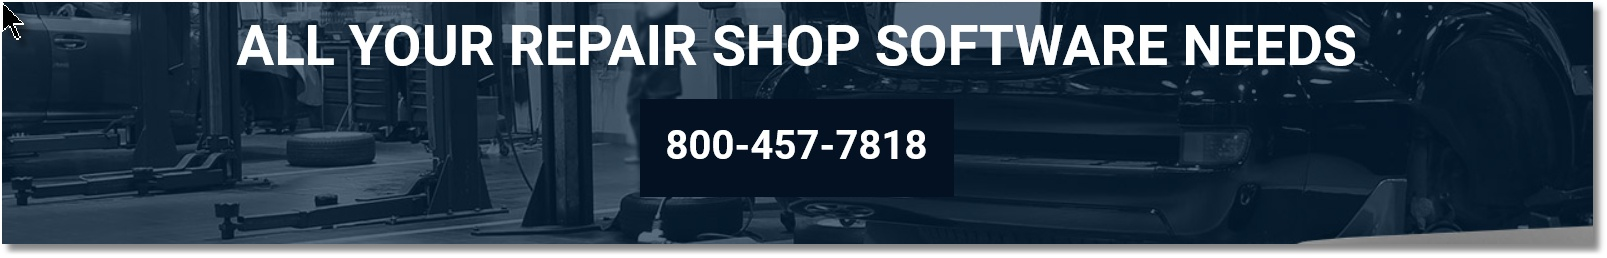 All your repair shop software needs